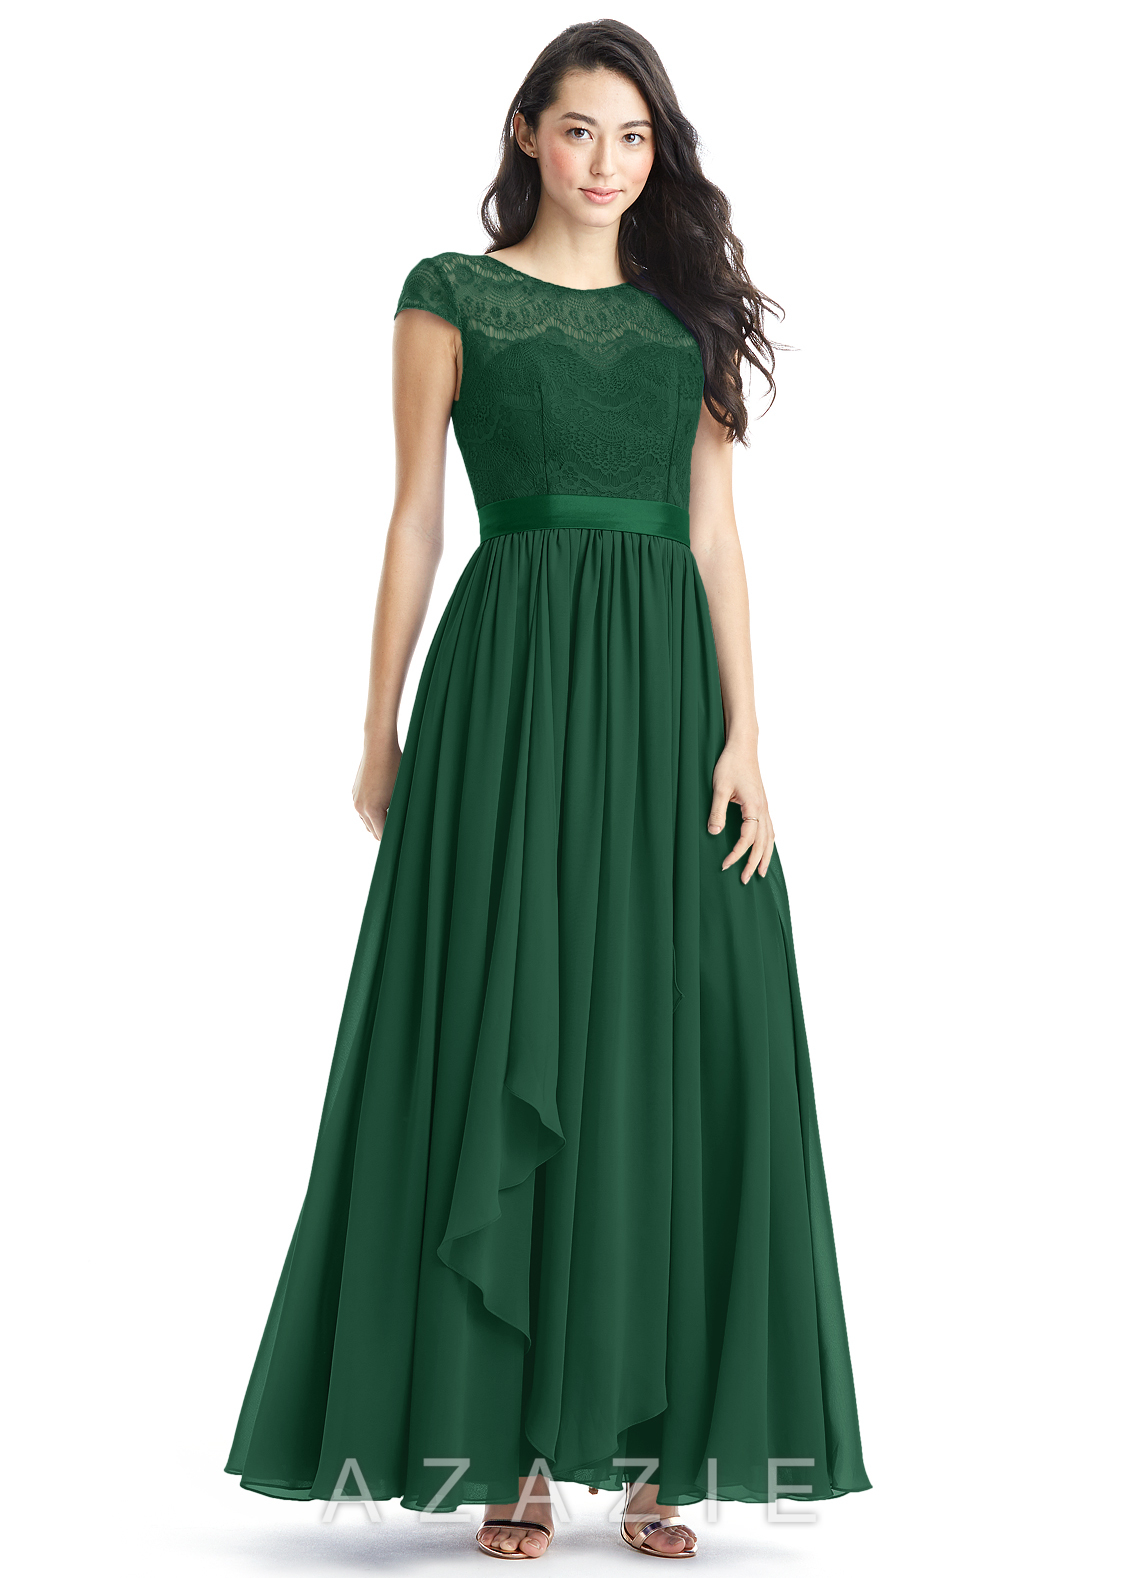 Azazie beatrice bridesmaid dress azazie color dark green ombrellifo Choice Image